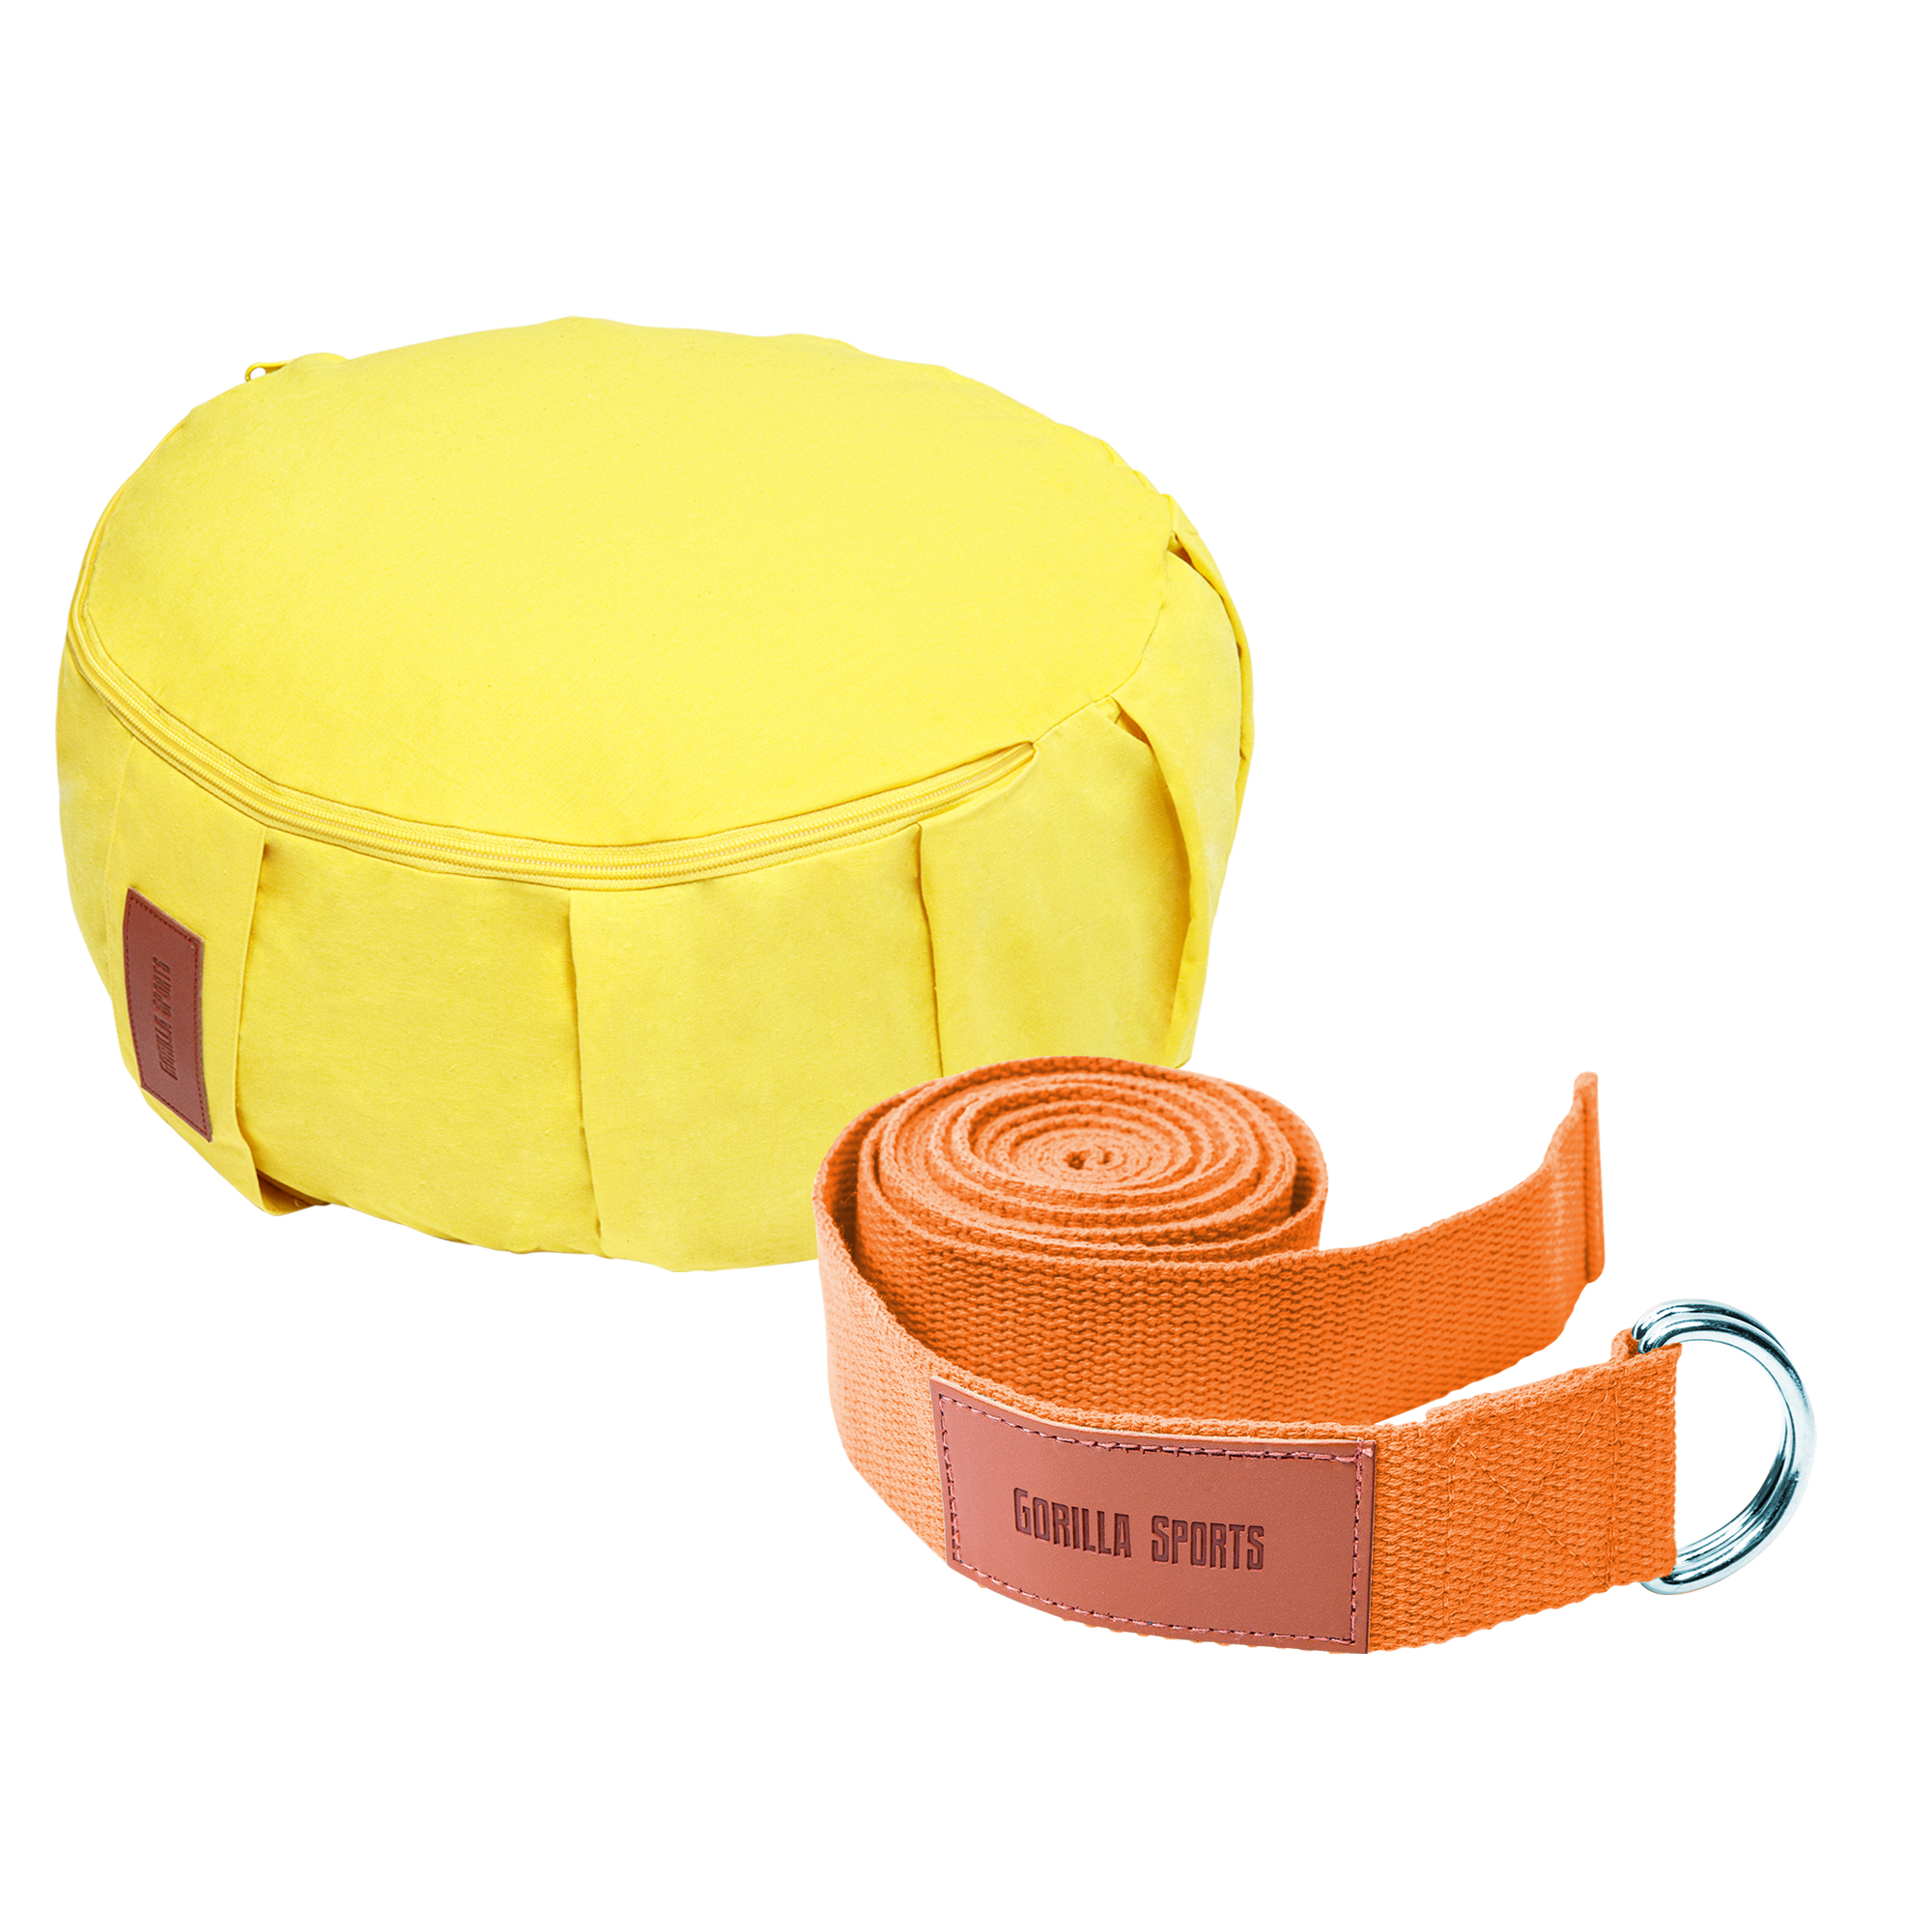 Gorilla Sports Yoga Set Gelb/Orange inkl. Yogakissen und Yogagurt 101133-00032-0001